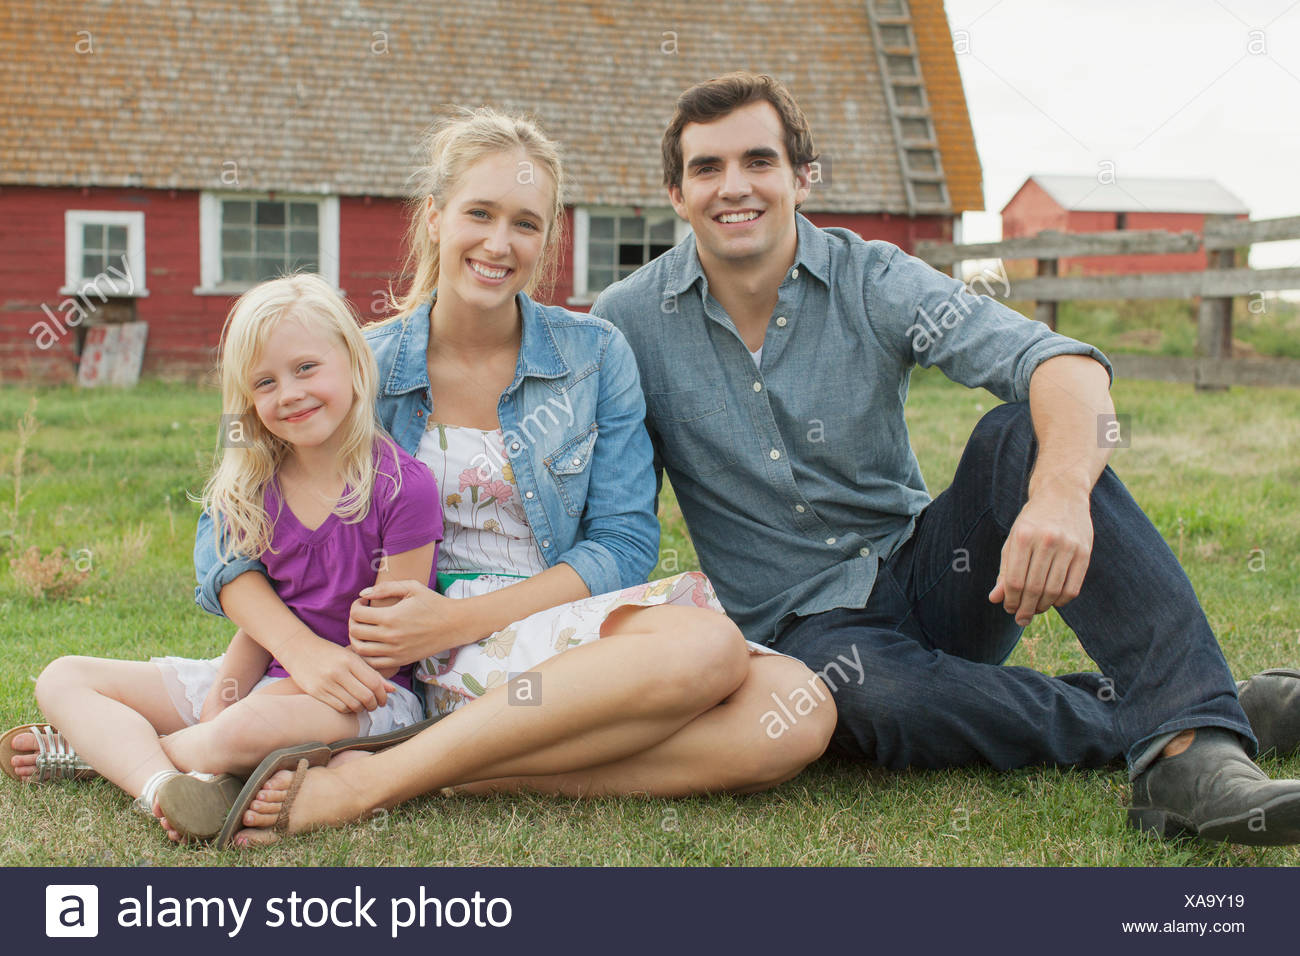 Portrait of young family on rural property. - Stock Image